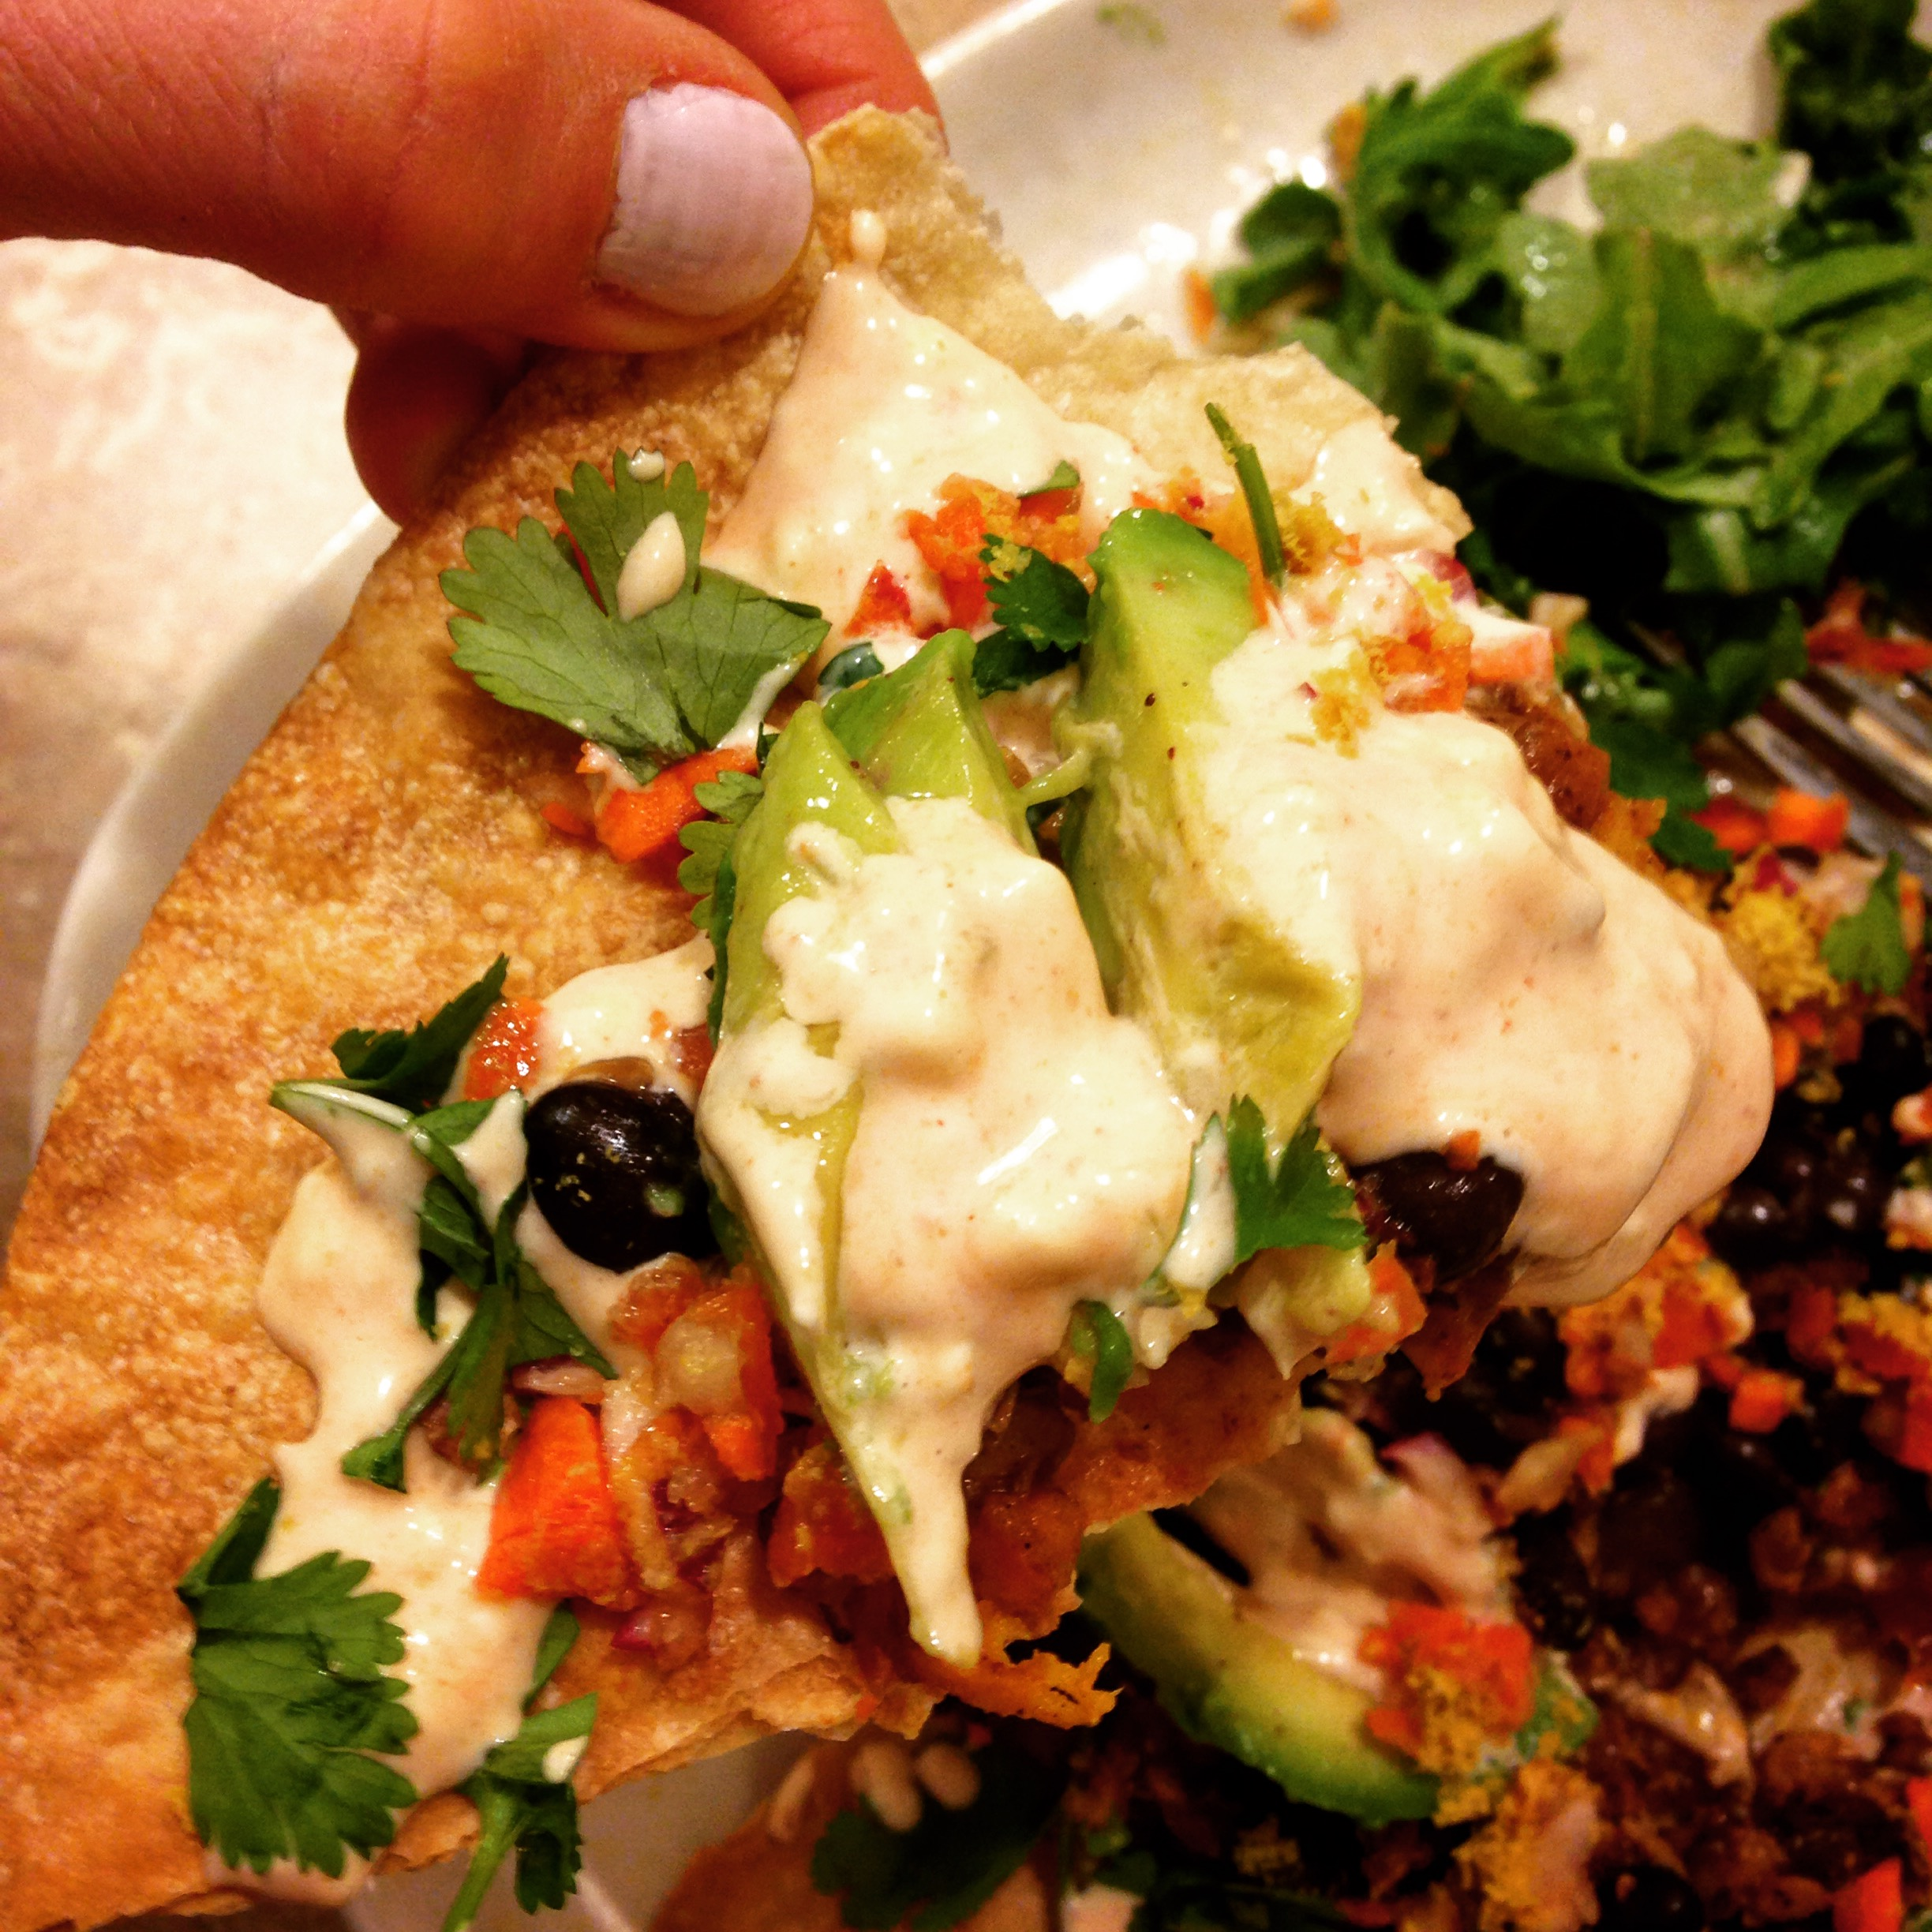 vegetarian and vegan tempeh tostada with black beans, cilantro, and spicy mayo